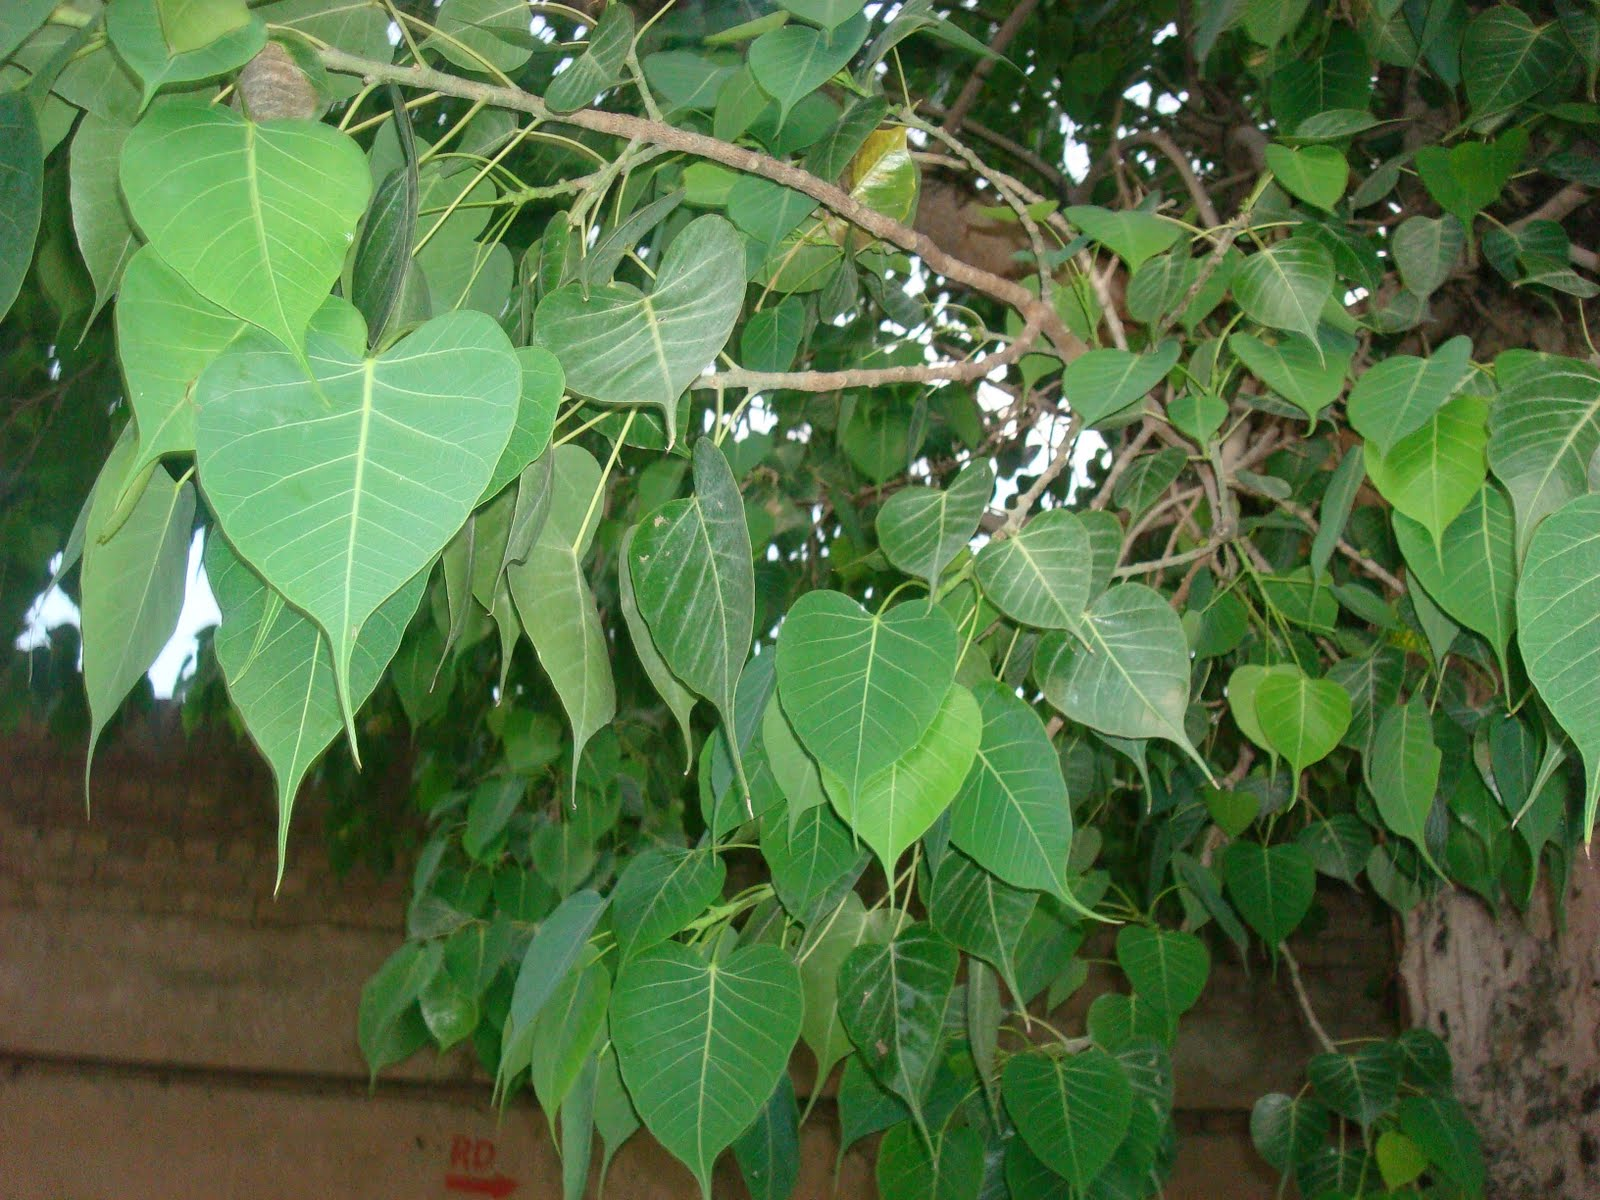 I Earth I Echo Leaves Of The Peepal Tree